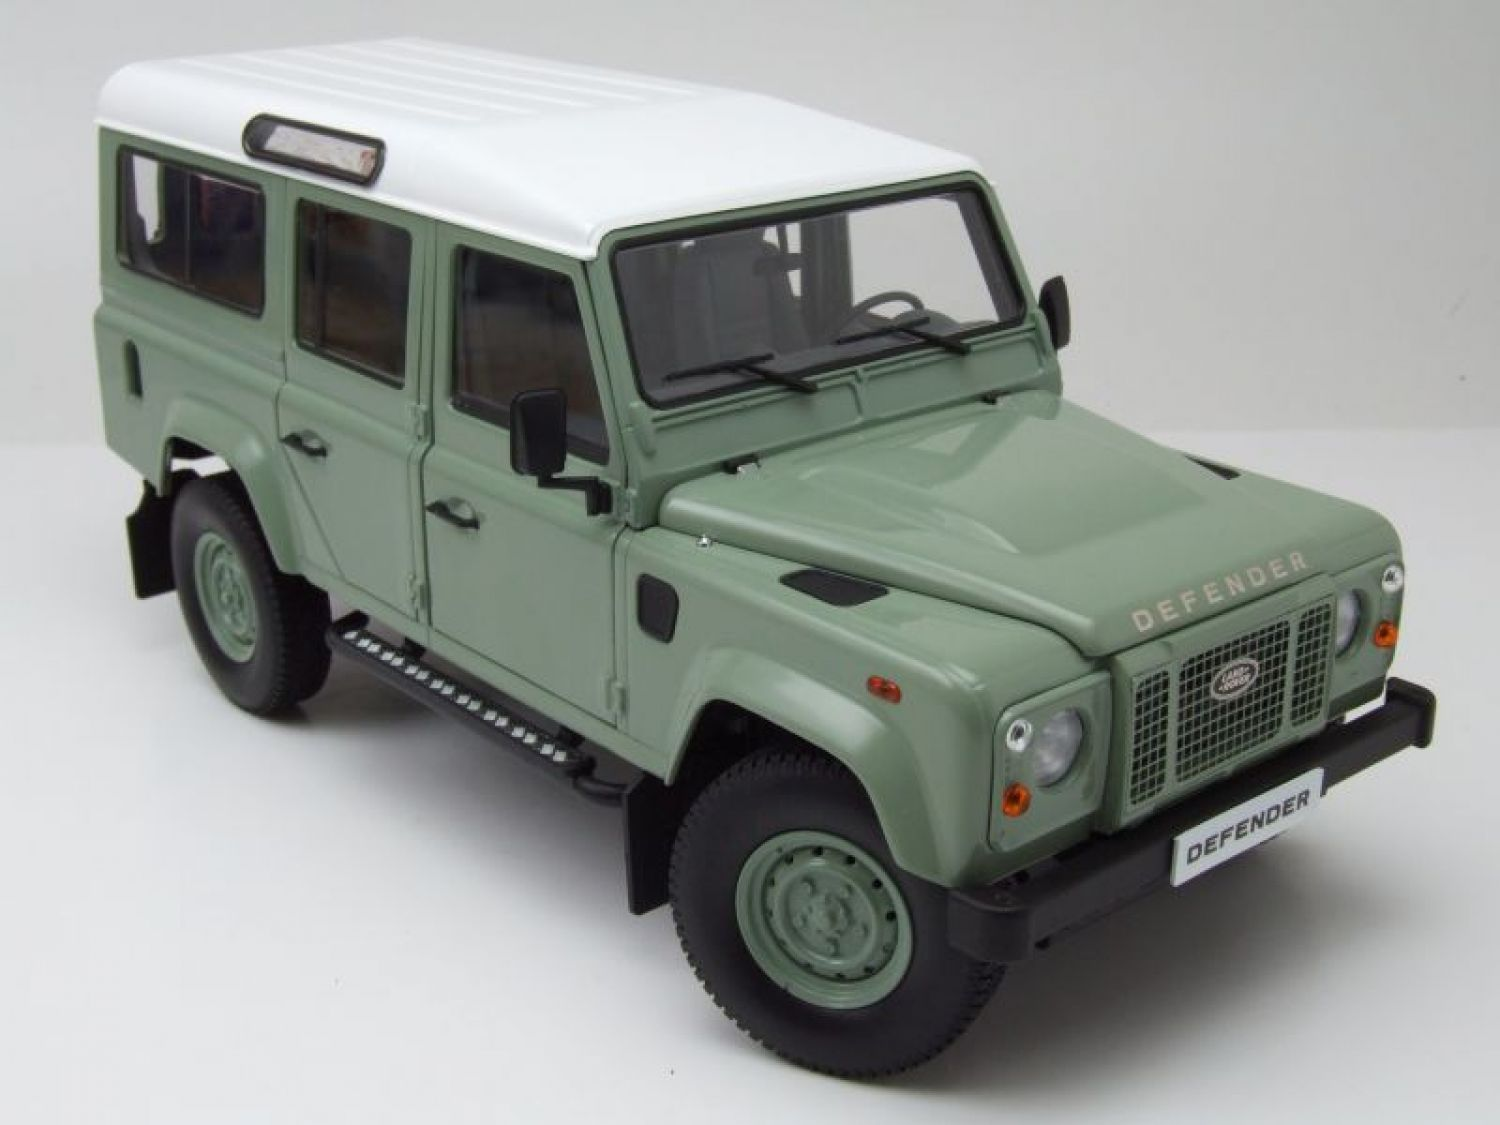 land rover defender 110 lhd gr n wei modellauto 1 18 dorlop ebay. Black Bedroom Furniture Sets. Home Design Ideas